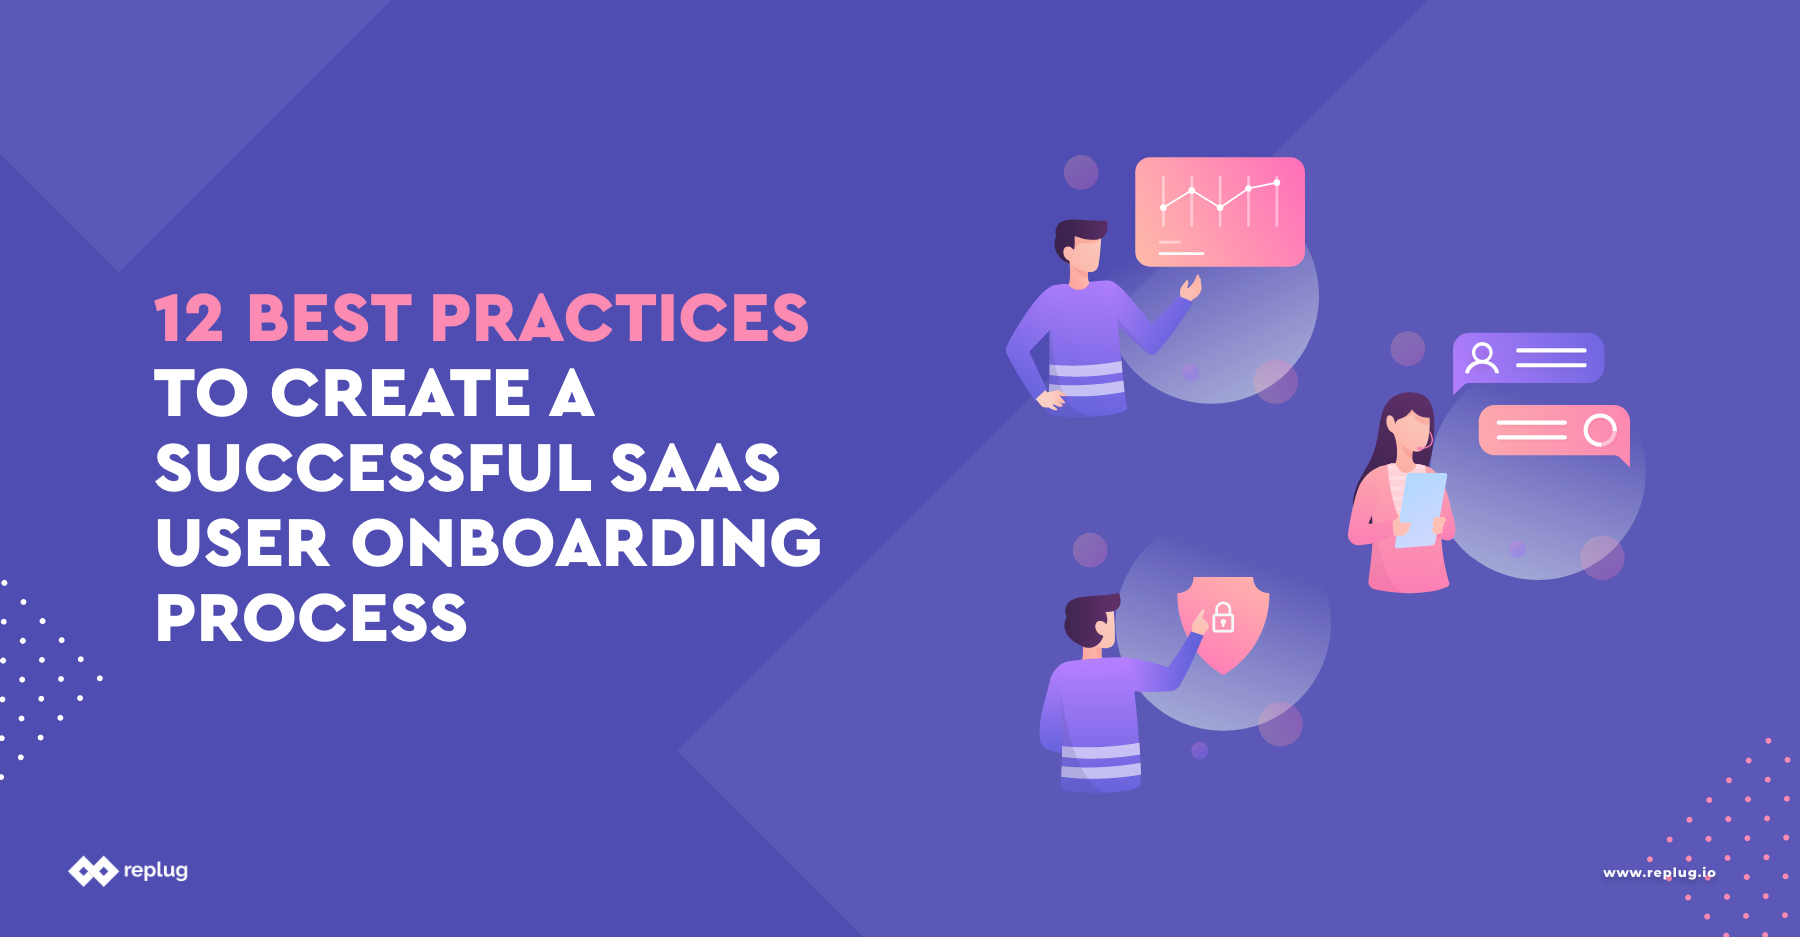 12 Best Practices to Create a Successful SaaS User Onboarding Process